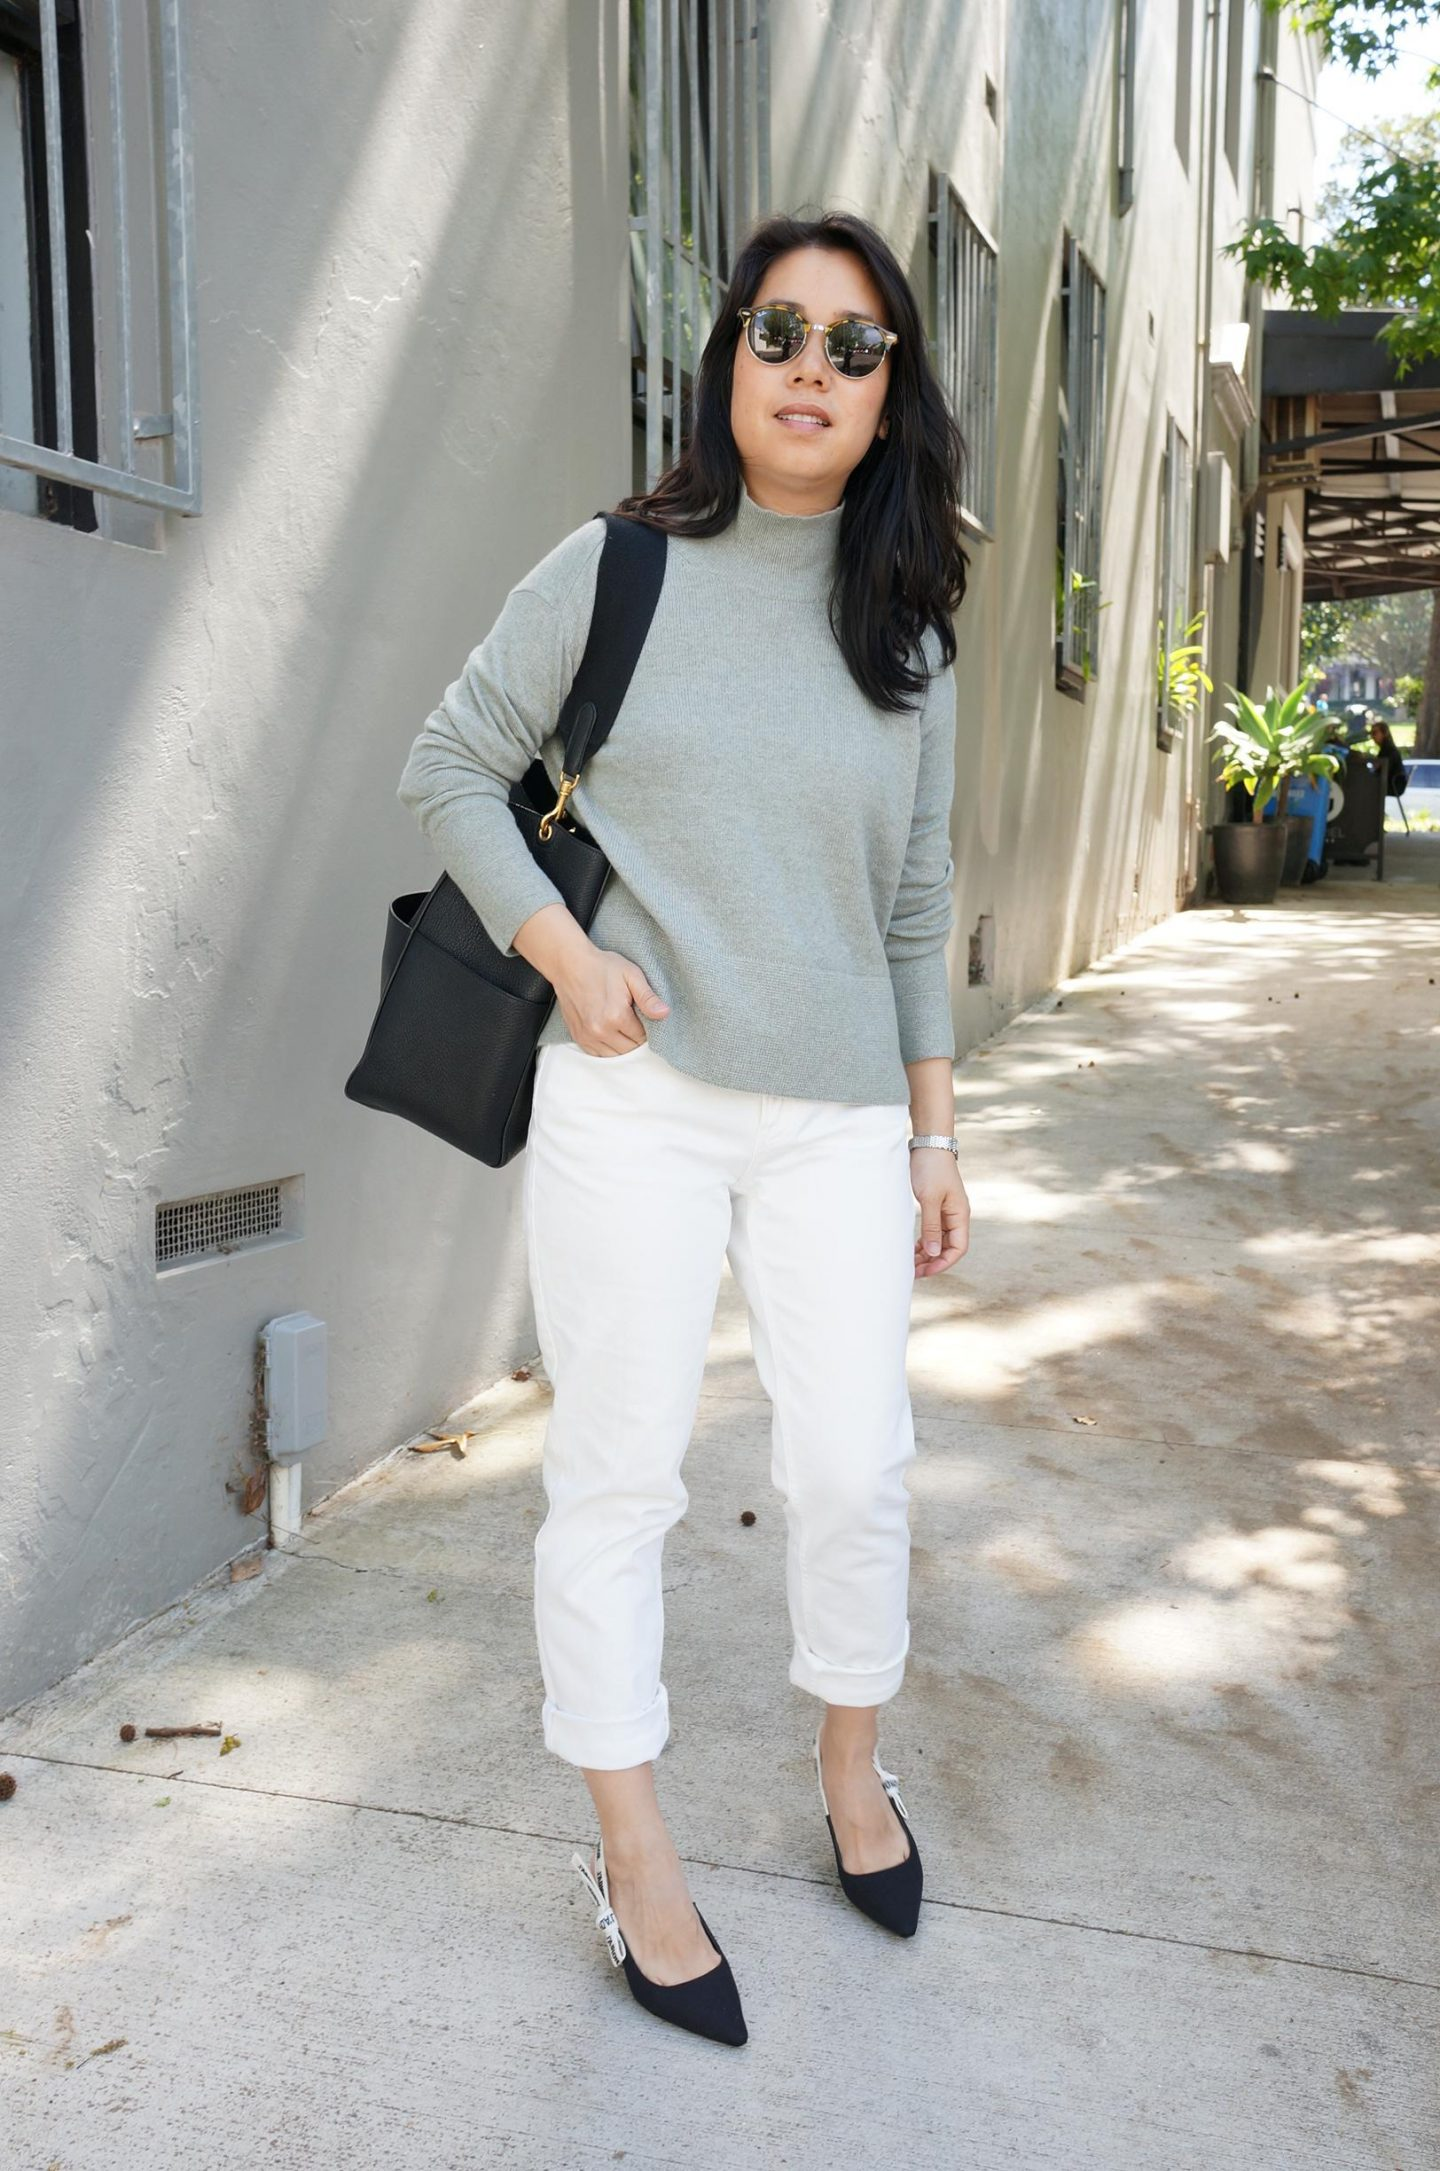 everlane cashmere square turtleneck in sage styled with curvy cheeky straight jean and celine sangle bag